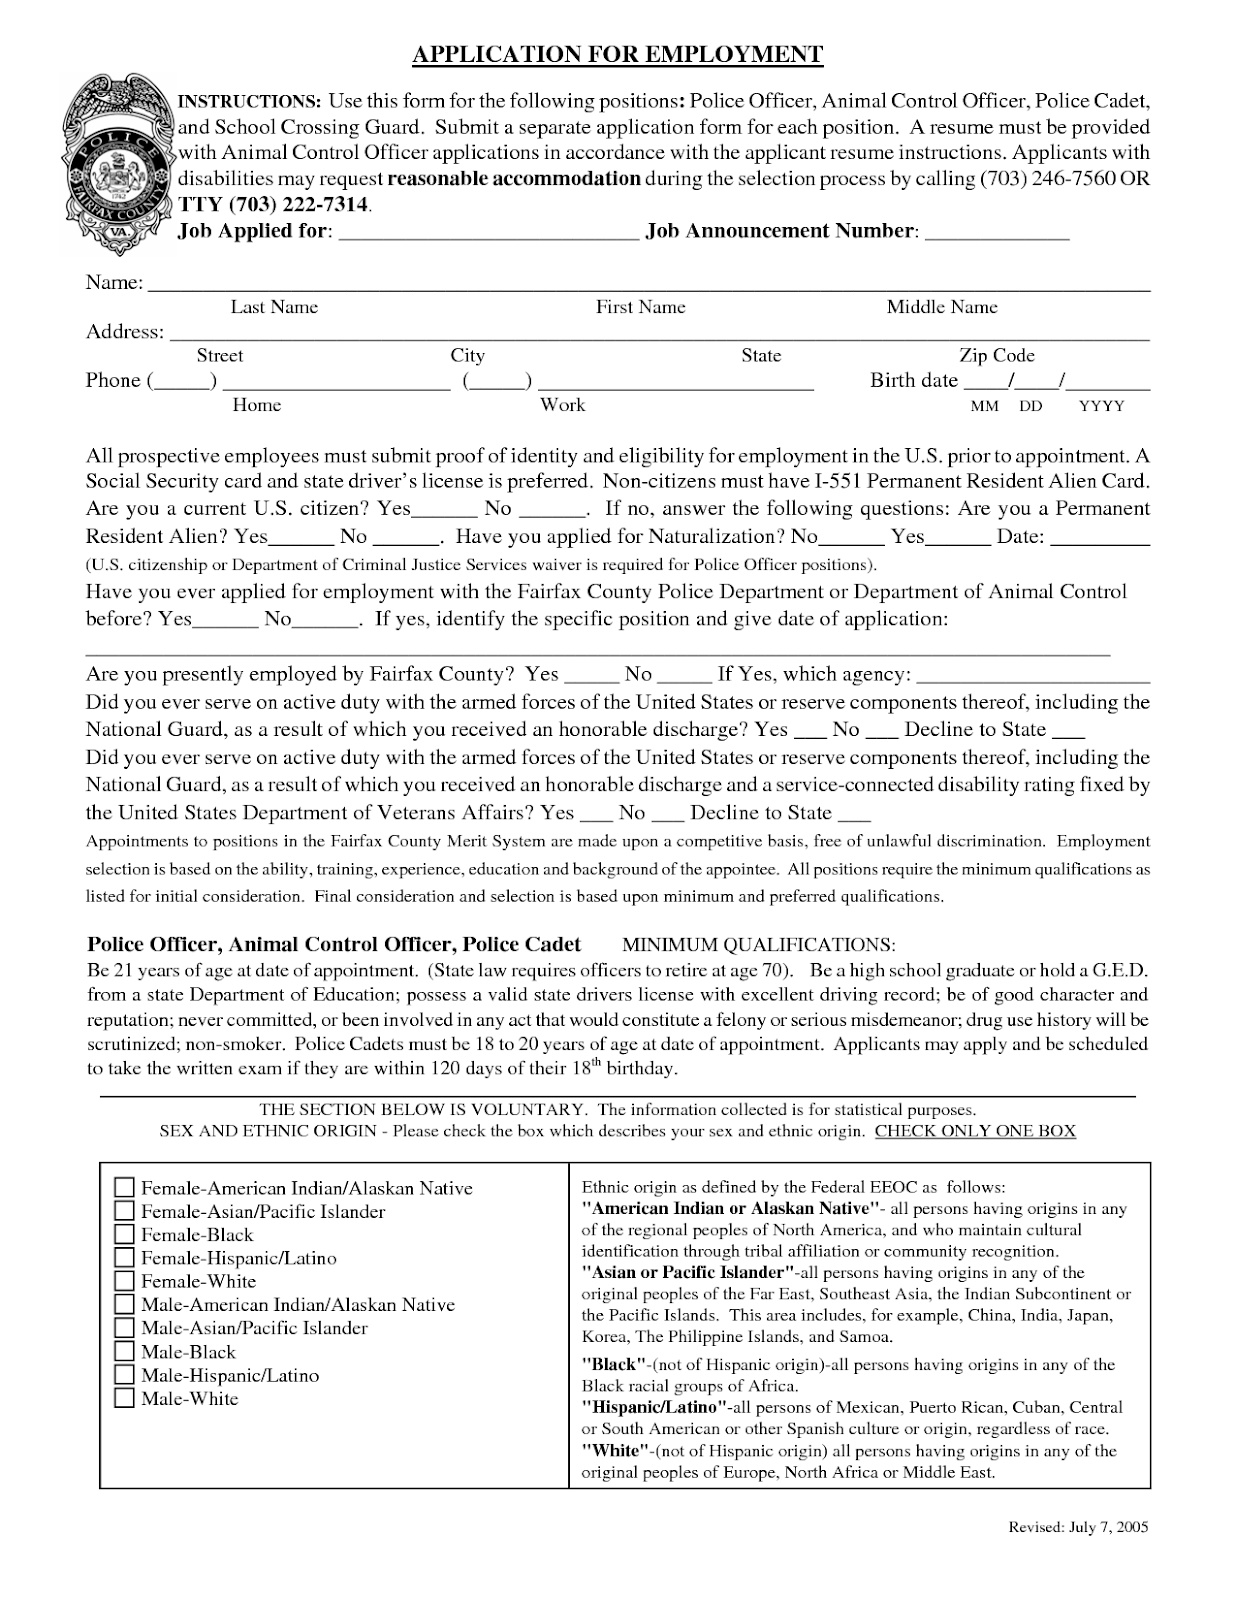 499a74d38abf40bea303a272296168f1 - Application Letter For Cadet Officer Sample